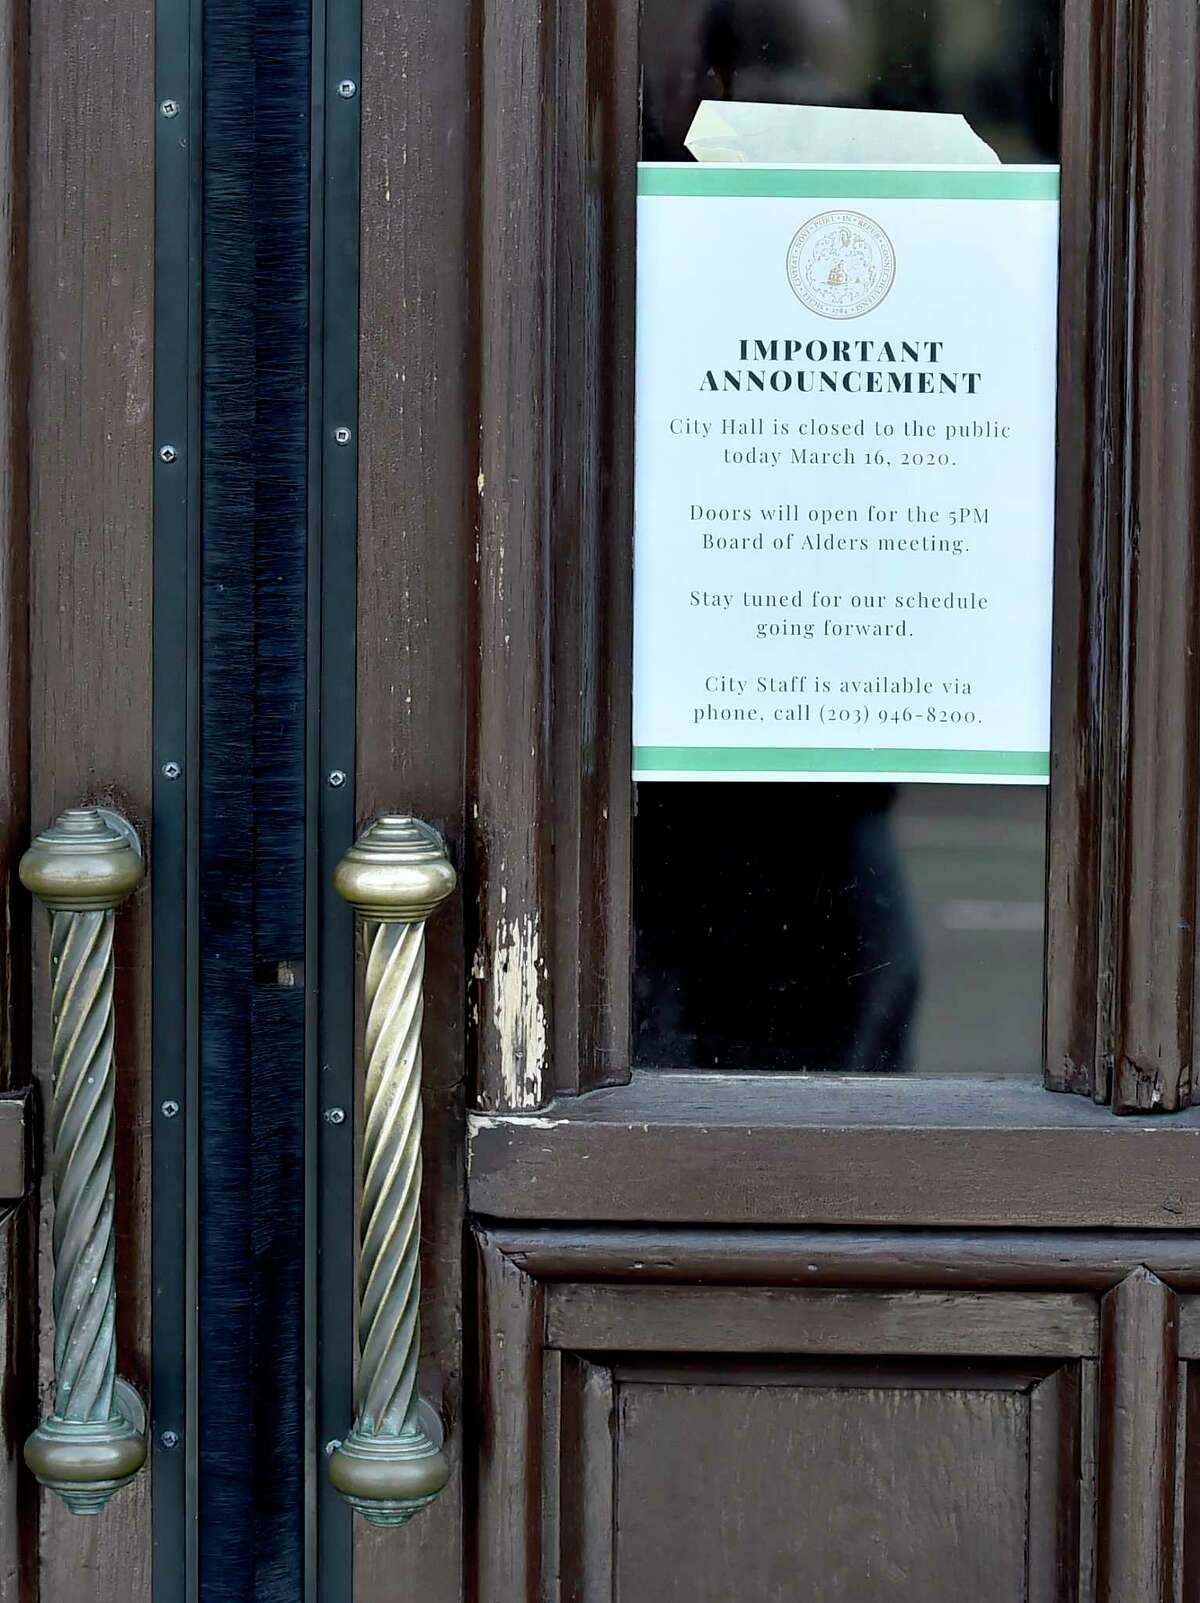 New Haven, Connecticut - Friday, March 16, 2020: A sign on the front doors announces the closing of New Haven City Hall amidst the public health concern over the Coronavirus / COVID-19 outbreak.